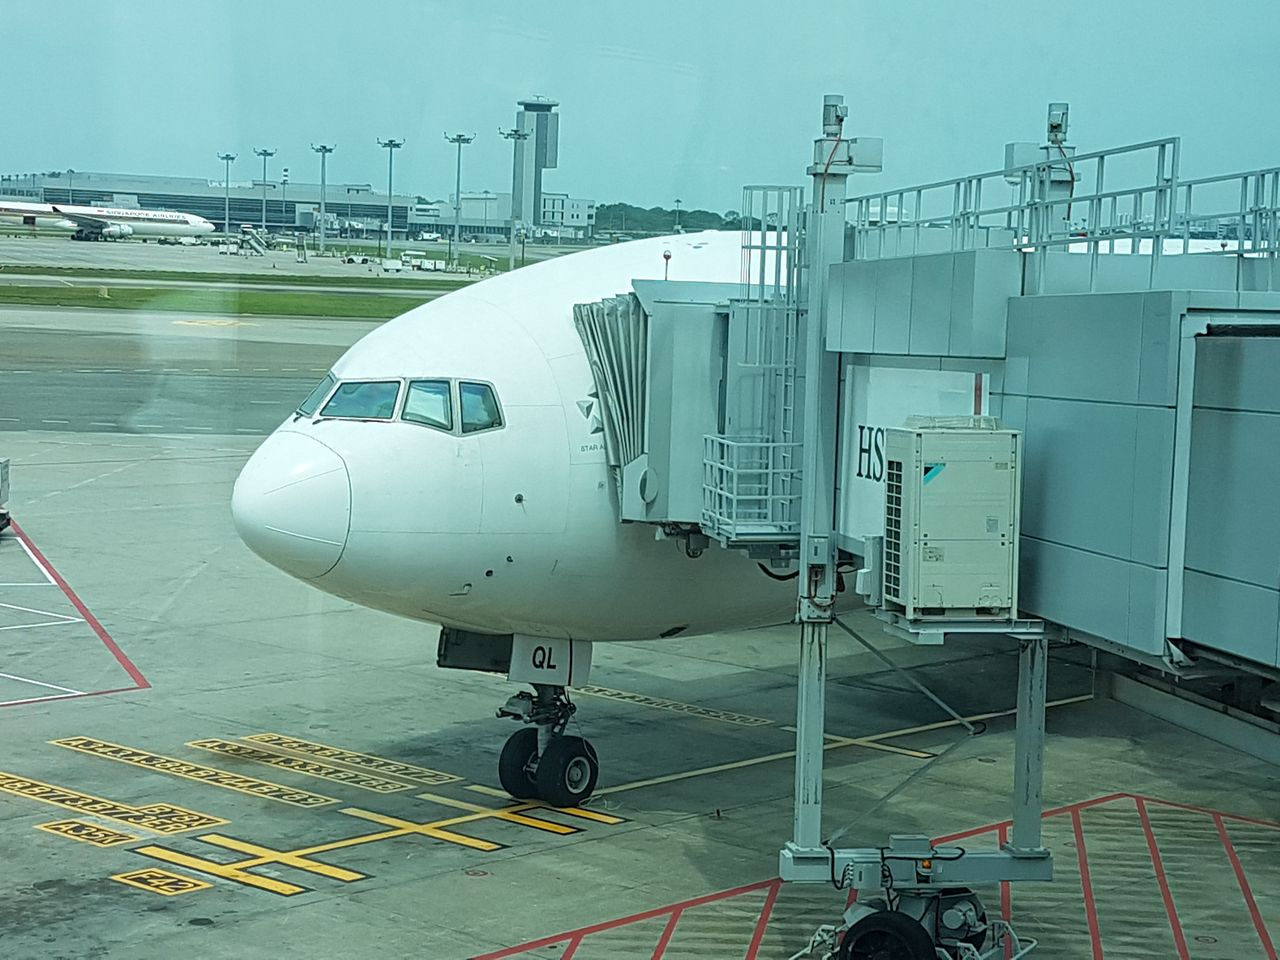 Review of Singapore Airlines flight from Singapore to Manila ...